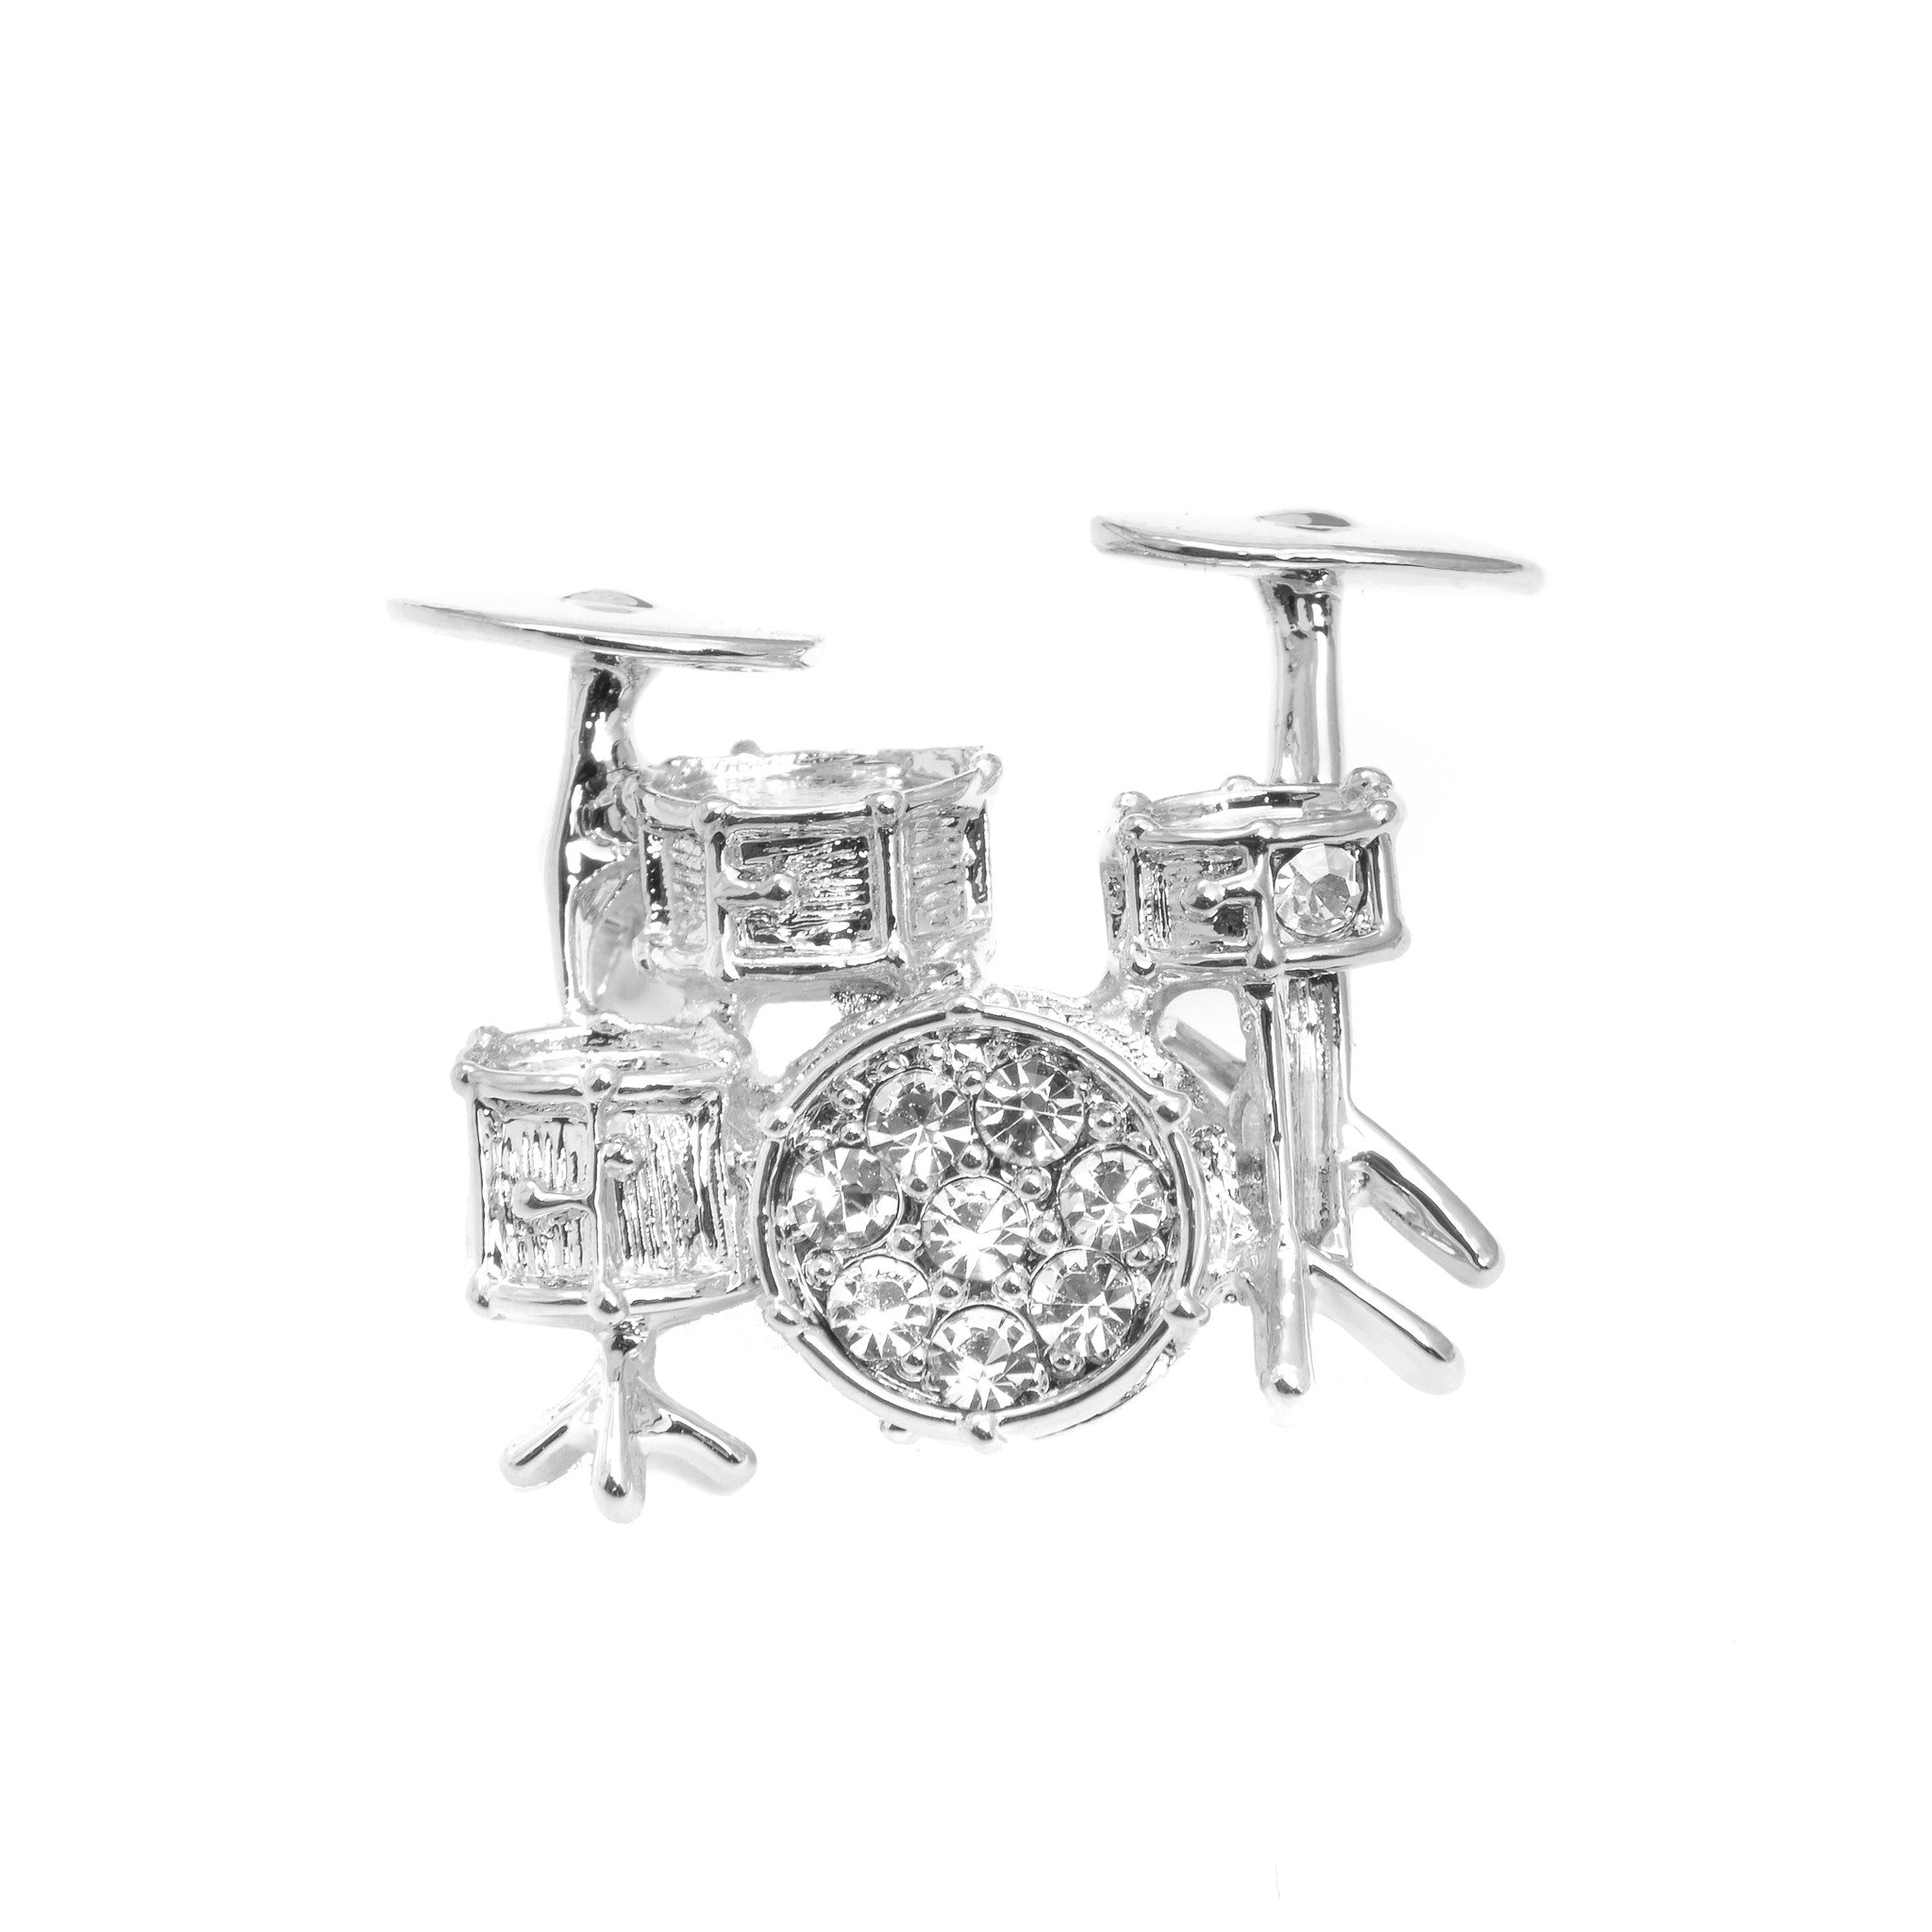 ... Crystal Drum Set Brooch Pin   Spinningdaisy ...